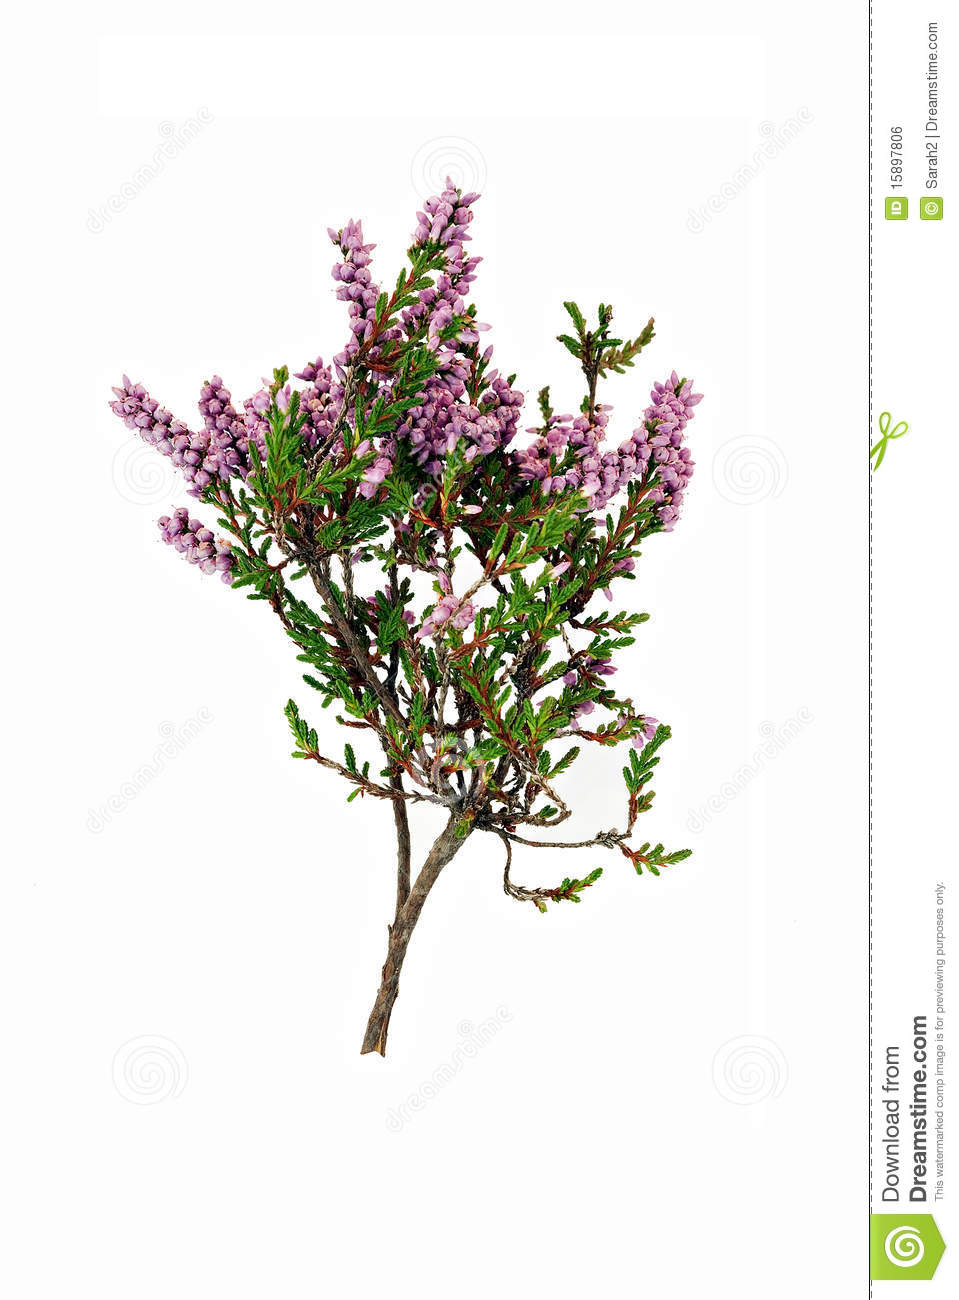 Heathers How to Grow and Care for Heather Plants Calluna